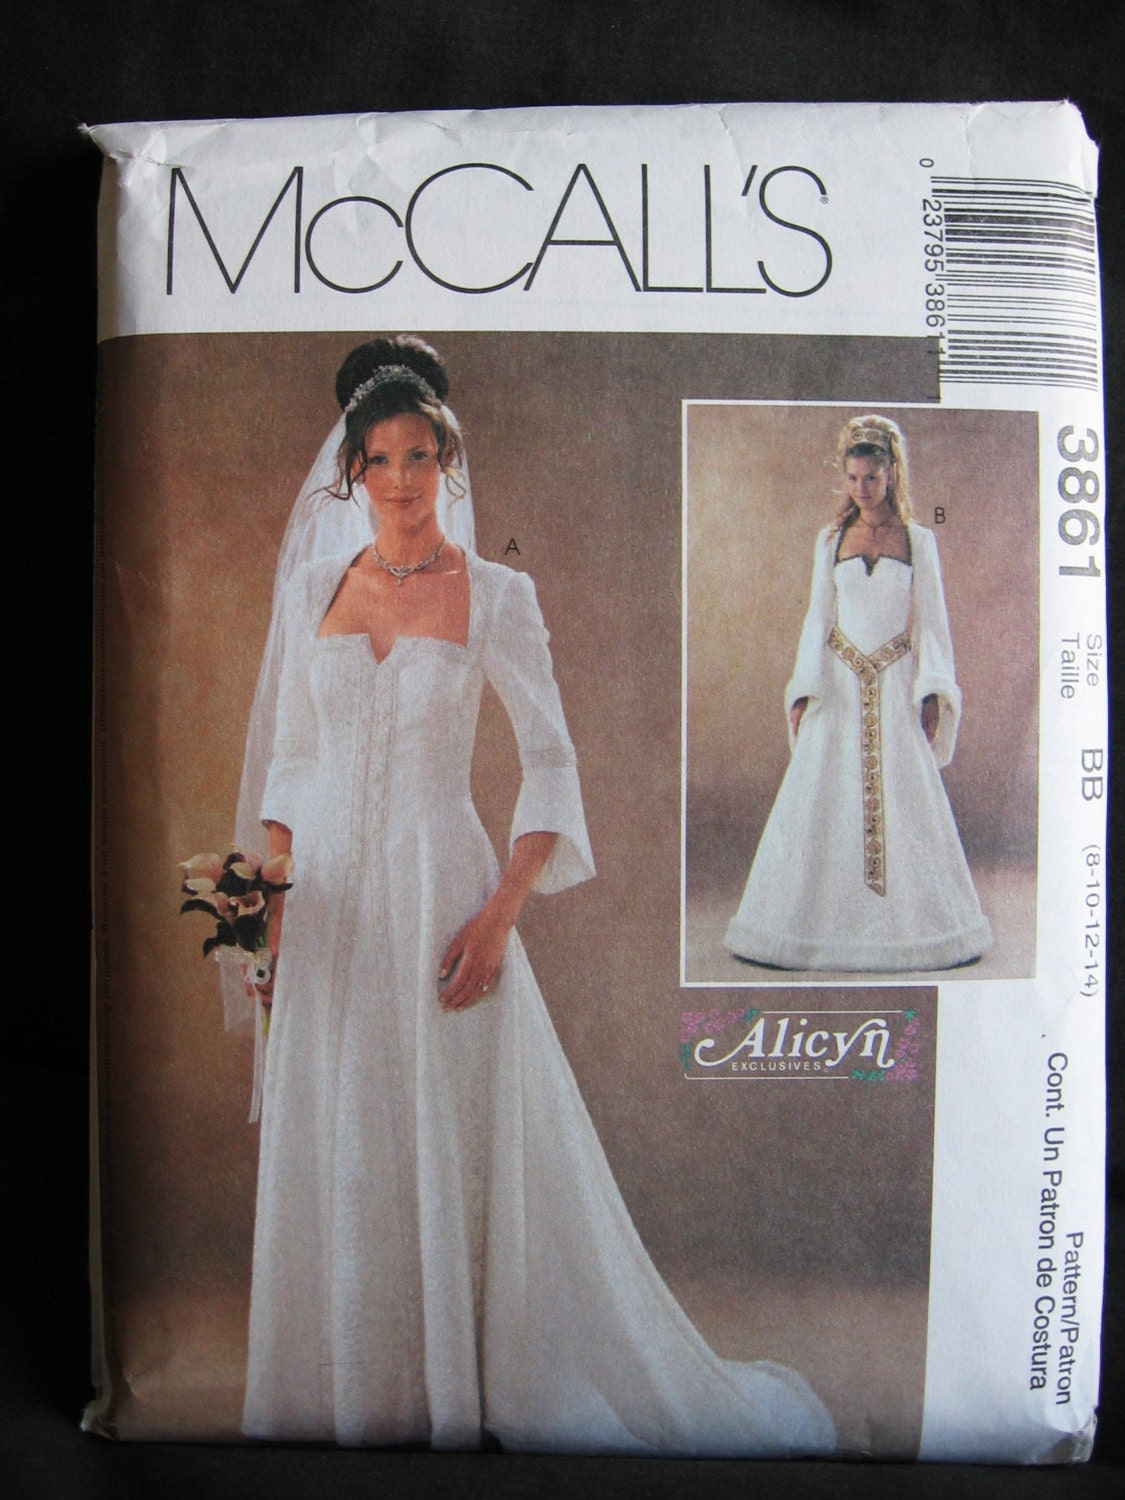 Mccalls 3861 alicyn bridal wedding gown pattern uncut by for Mccall wedding dress patterns